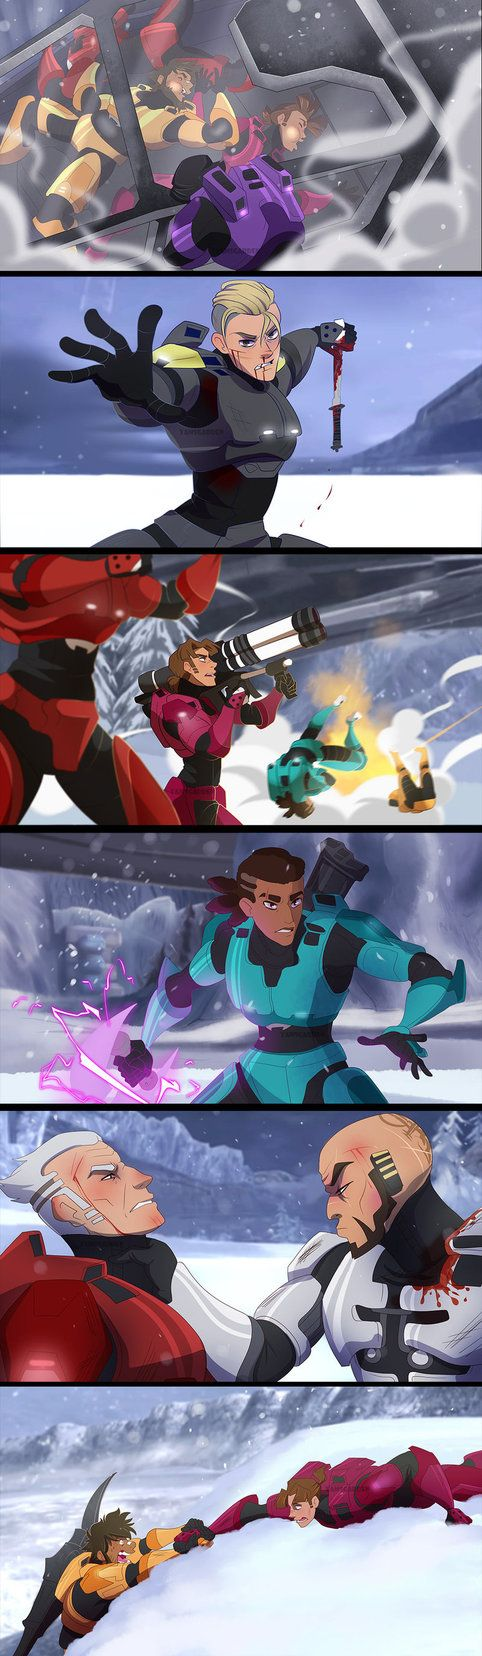 Red VS Blue - Screenshots Redraws 2 on DeviantArt